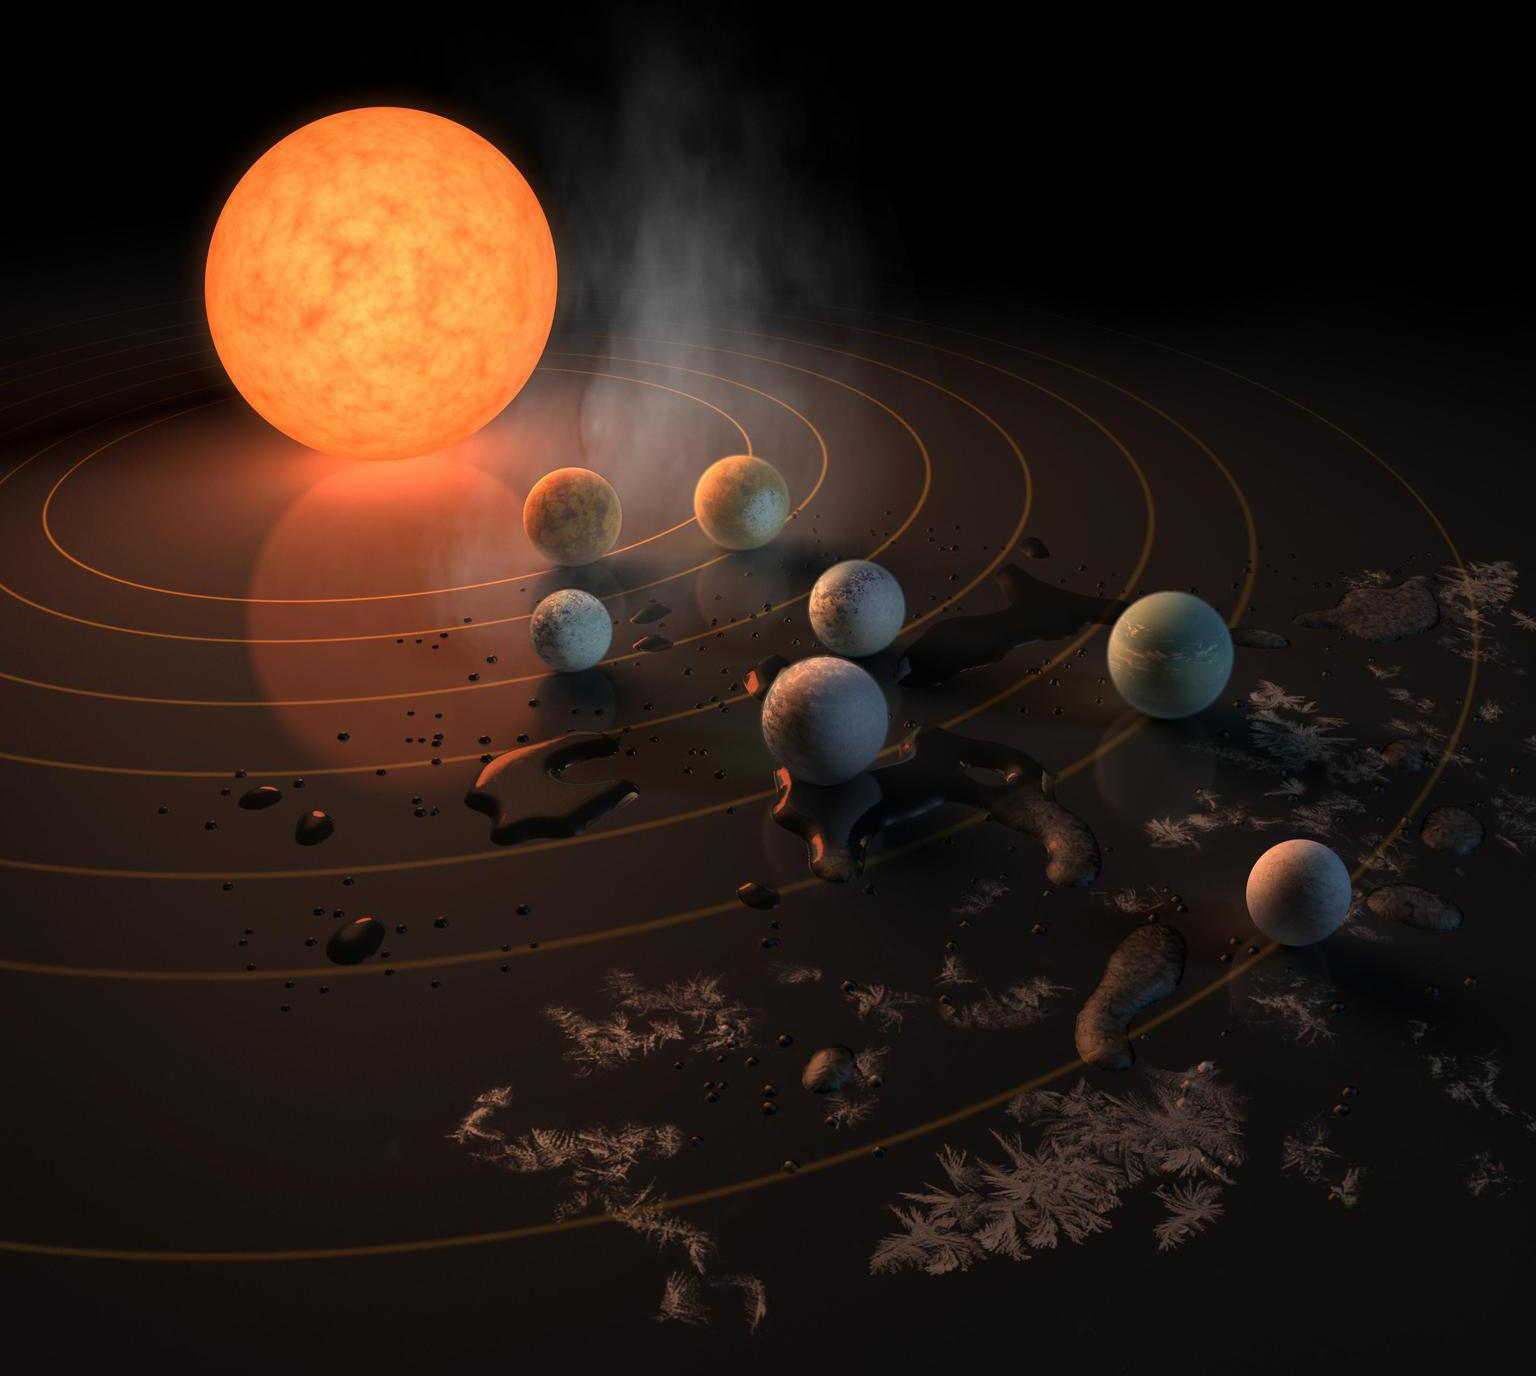 Exoplanets Of TRAPPIST-1 System Orbit In Synchronized Musical Harmonies, Making It Stable